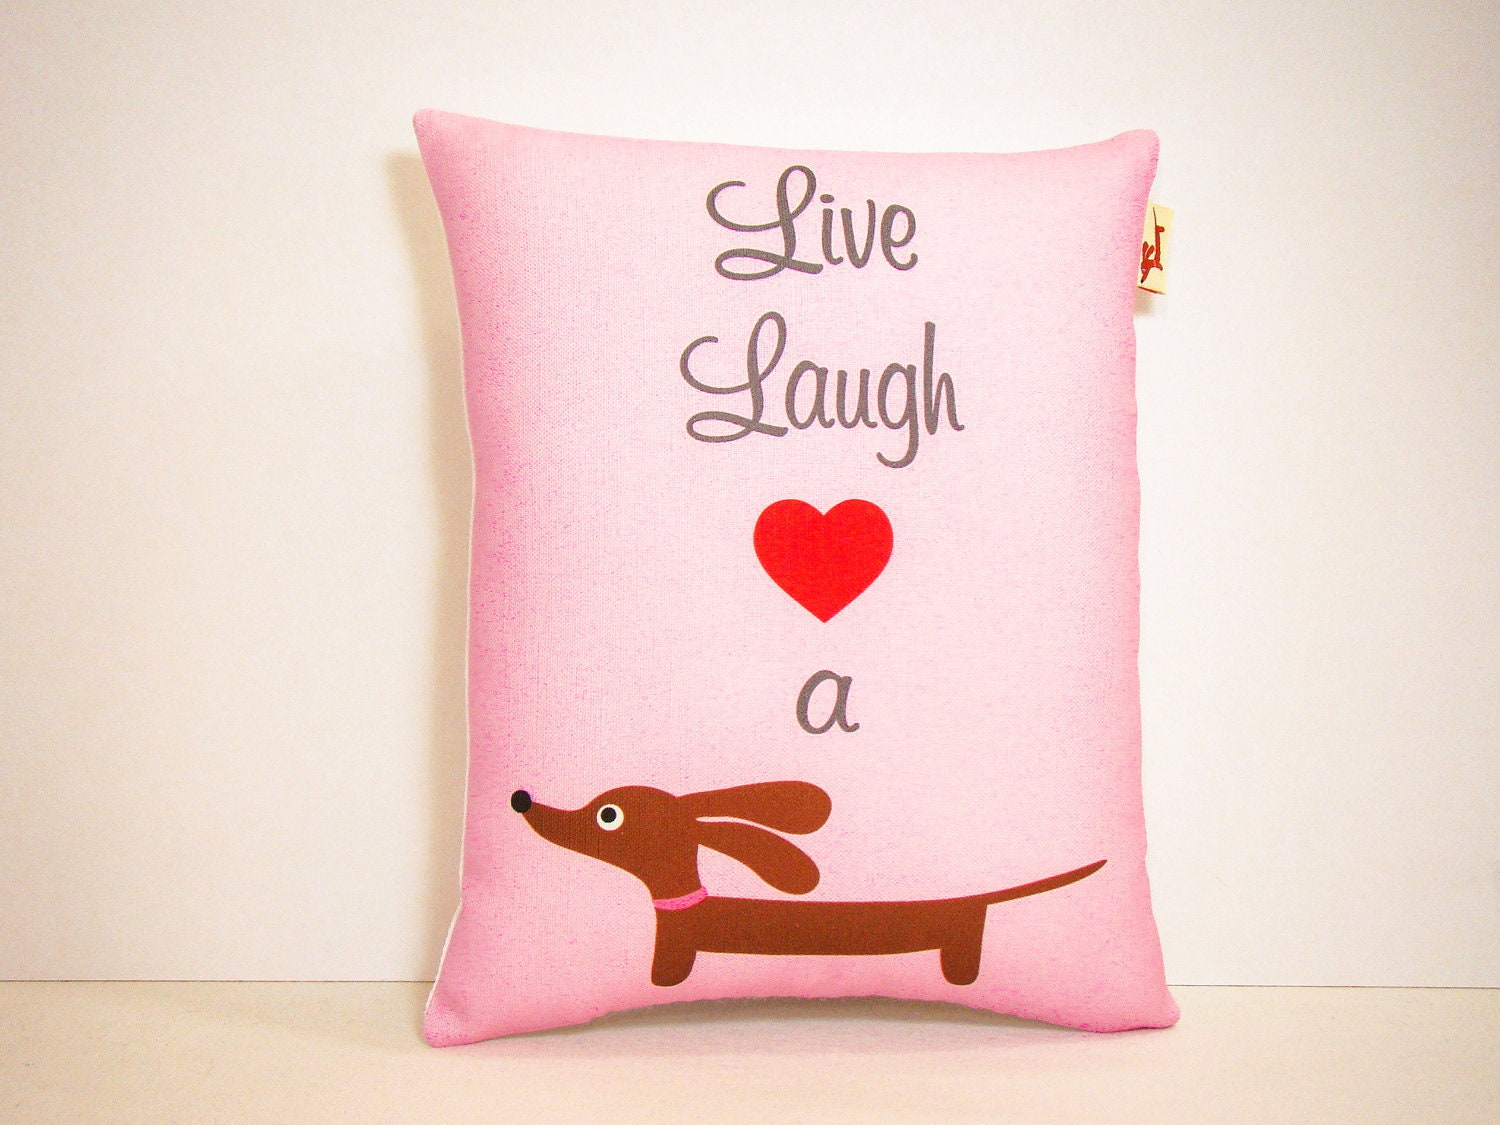 Dachshund Home Decor Dachshund Wiener Dog Pillow Live Laugh Love A Doxie Pink